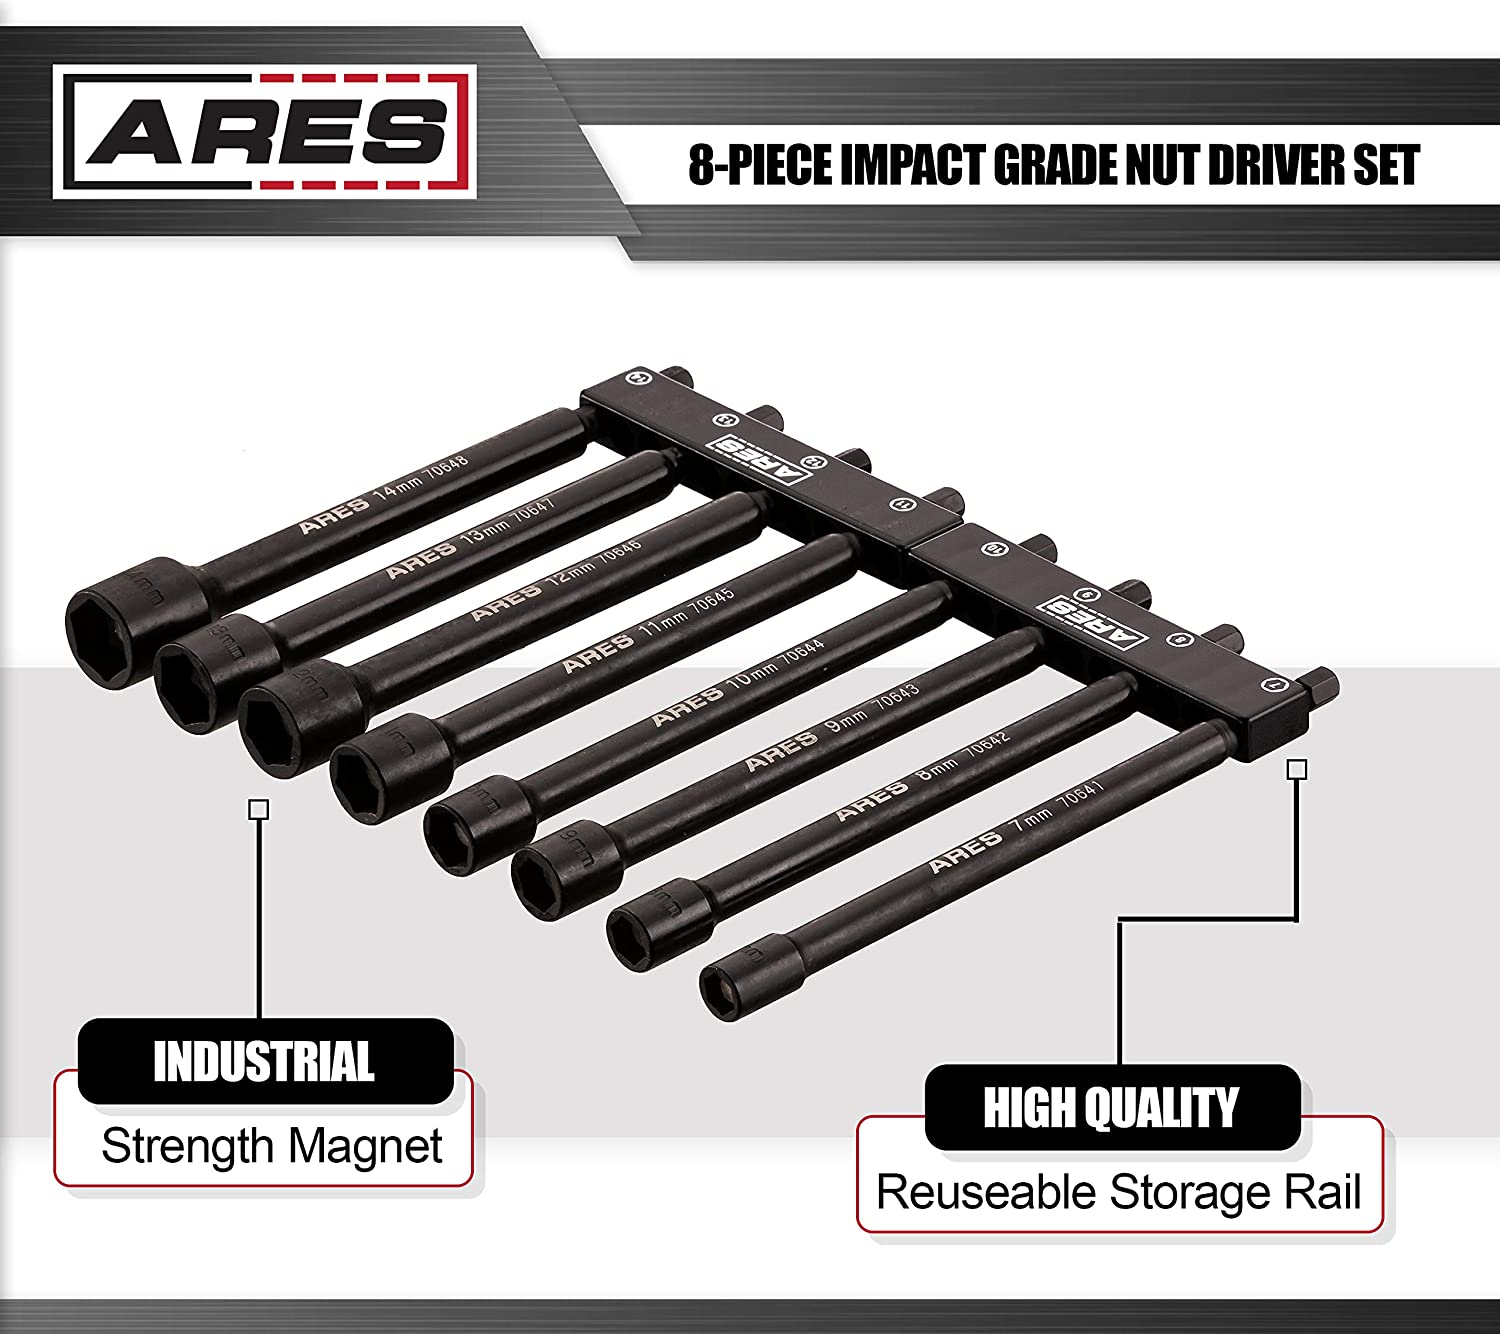 ARES 70640 8-Piece Metric Magnetic Impact Nut Driver Bit Set Impact Grade Nut Setters with Industrial Strength Magnets